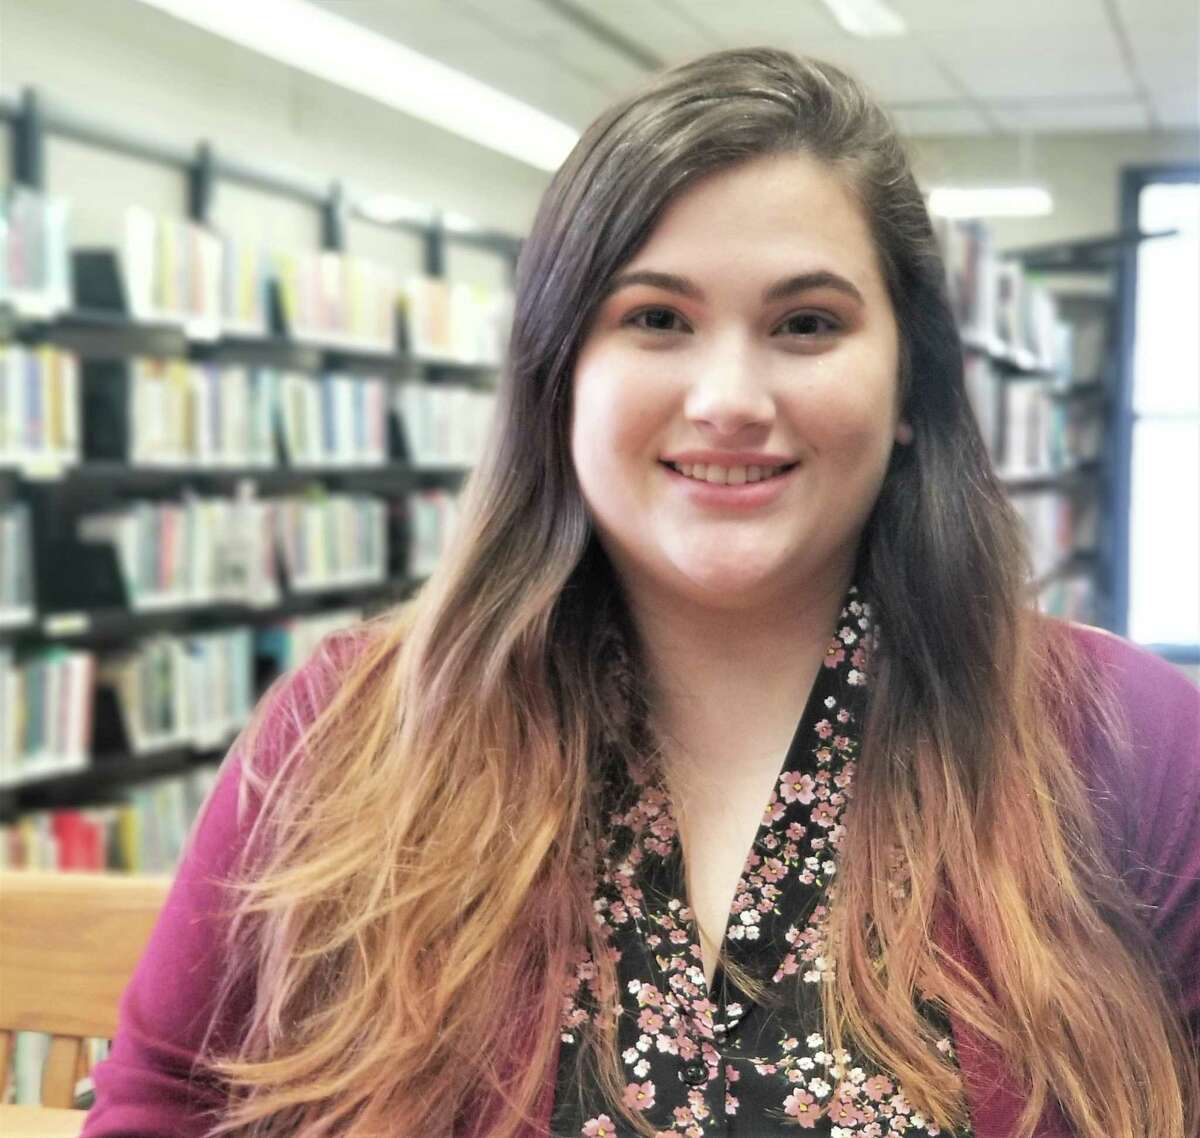 The East Hampton Public Library is welcoming Stephanie Smith as the new adult / young adult librarian.